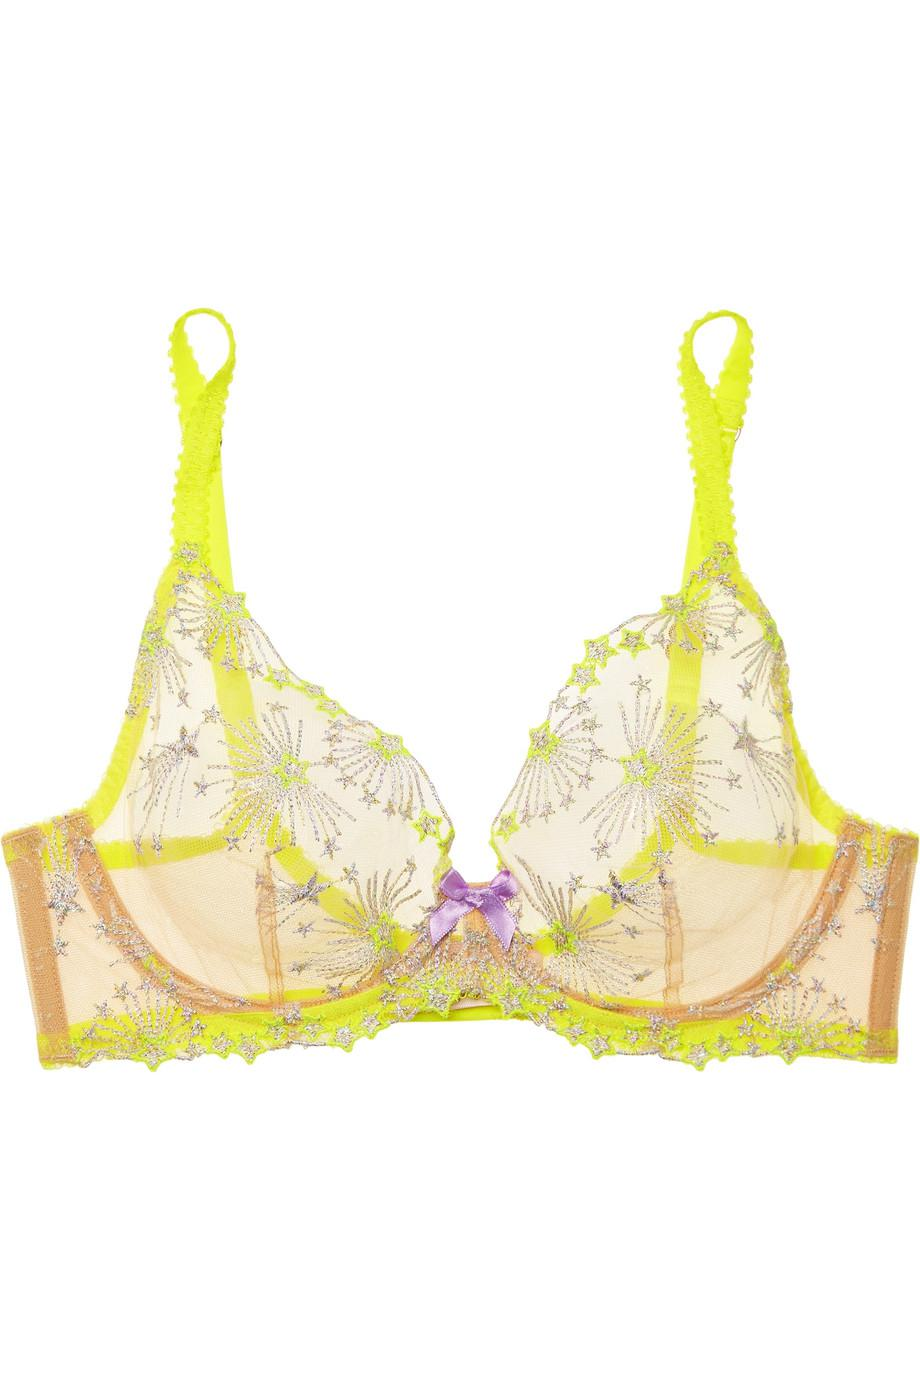 5368516bc7090 Lyst - Agent Provocateur Kaylie Embroidered Tulle Underwired Bra in ...